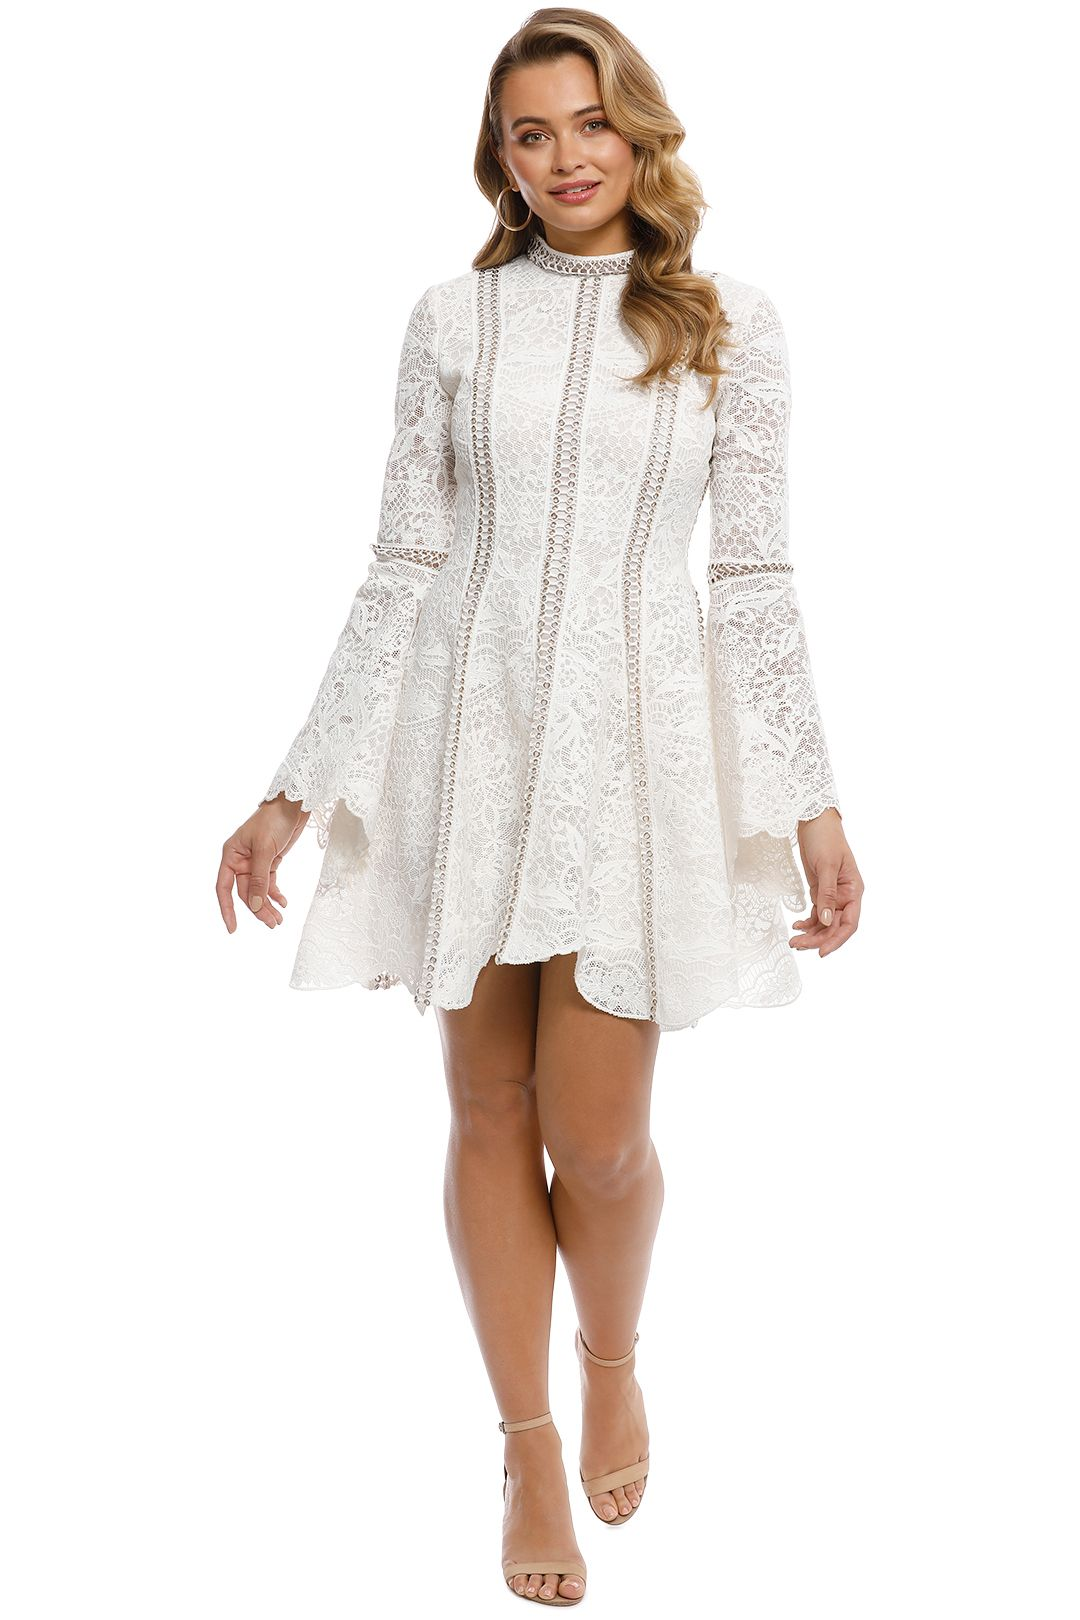 Thurley - Pearly Trim Dress - Ivory -front